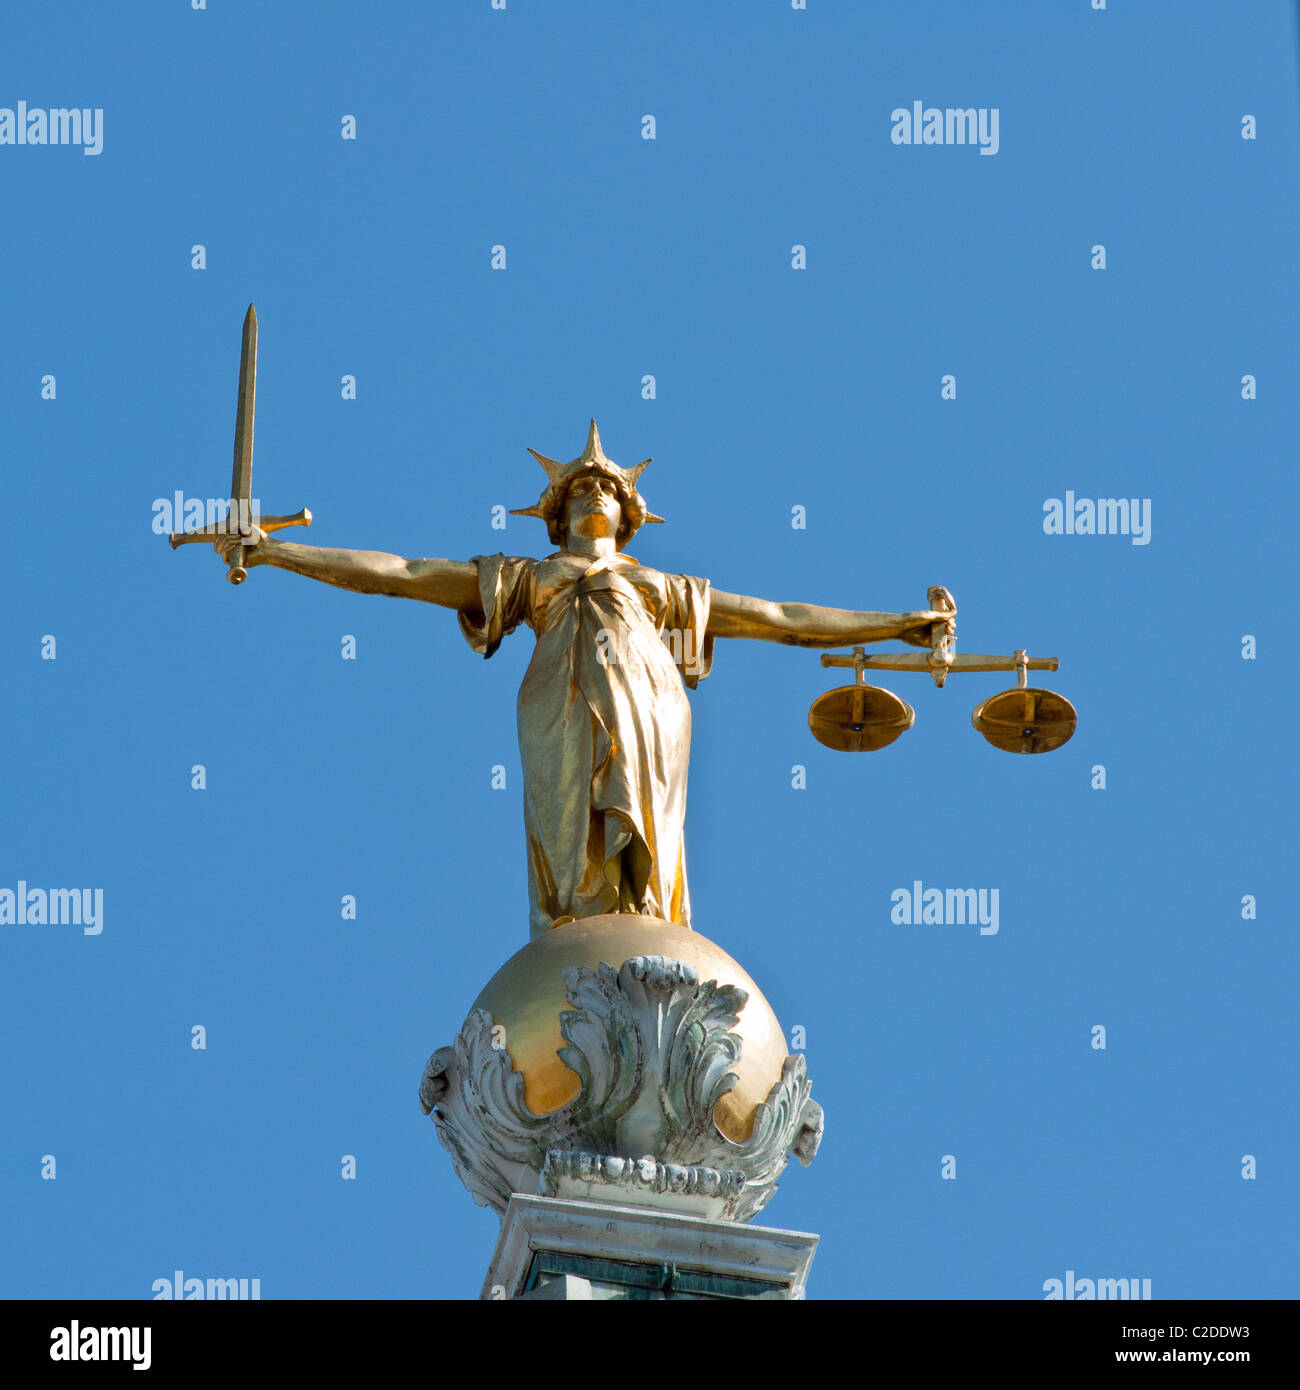 The Scales of Justice statue on the dome of the Old Bailey central criminal court. London. - Stock Image